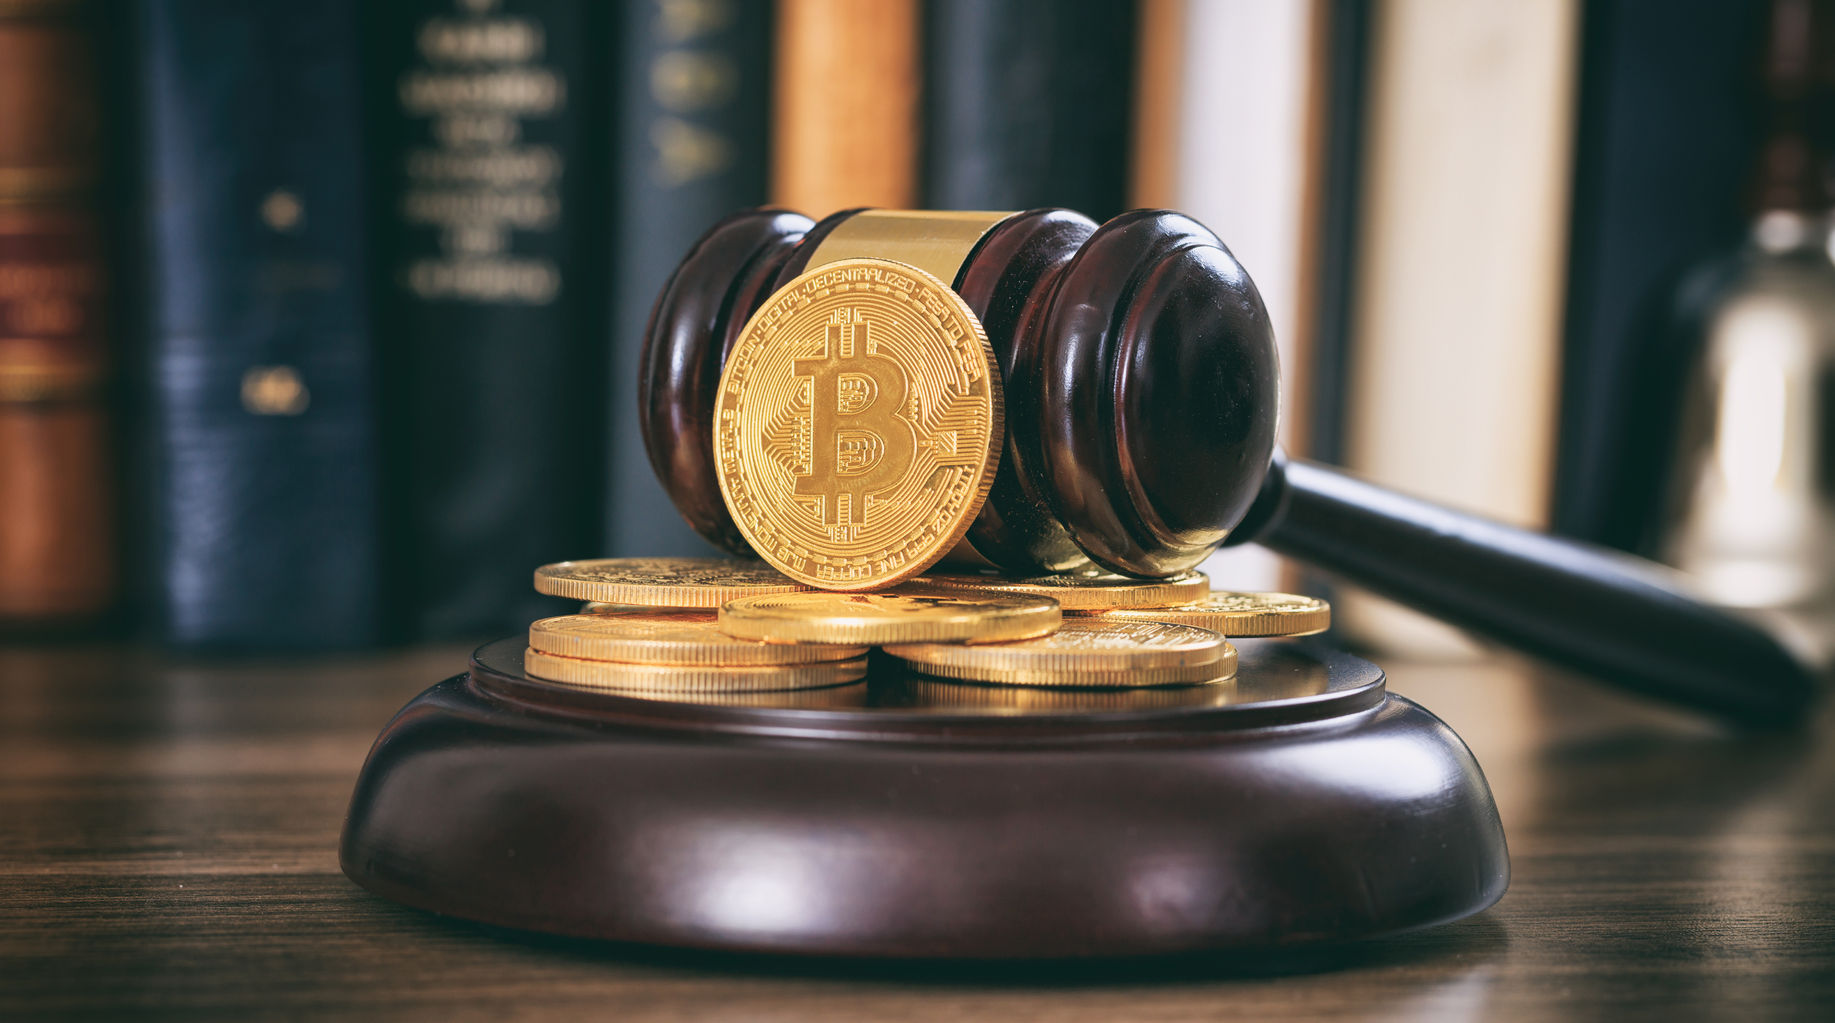 law or auction gavel and bitcoins on a wooden desk, dark background - cryptocurrencies legal